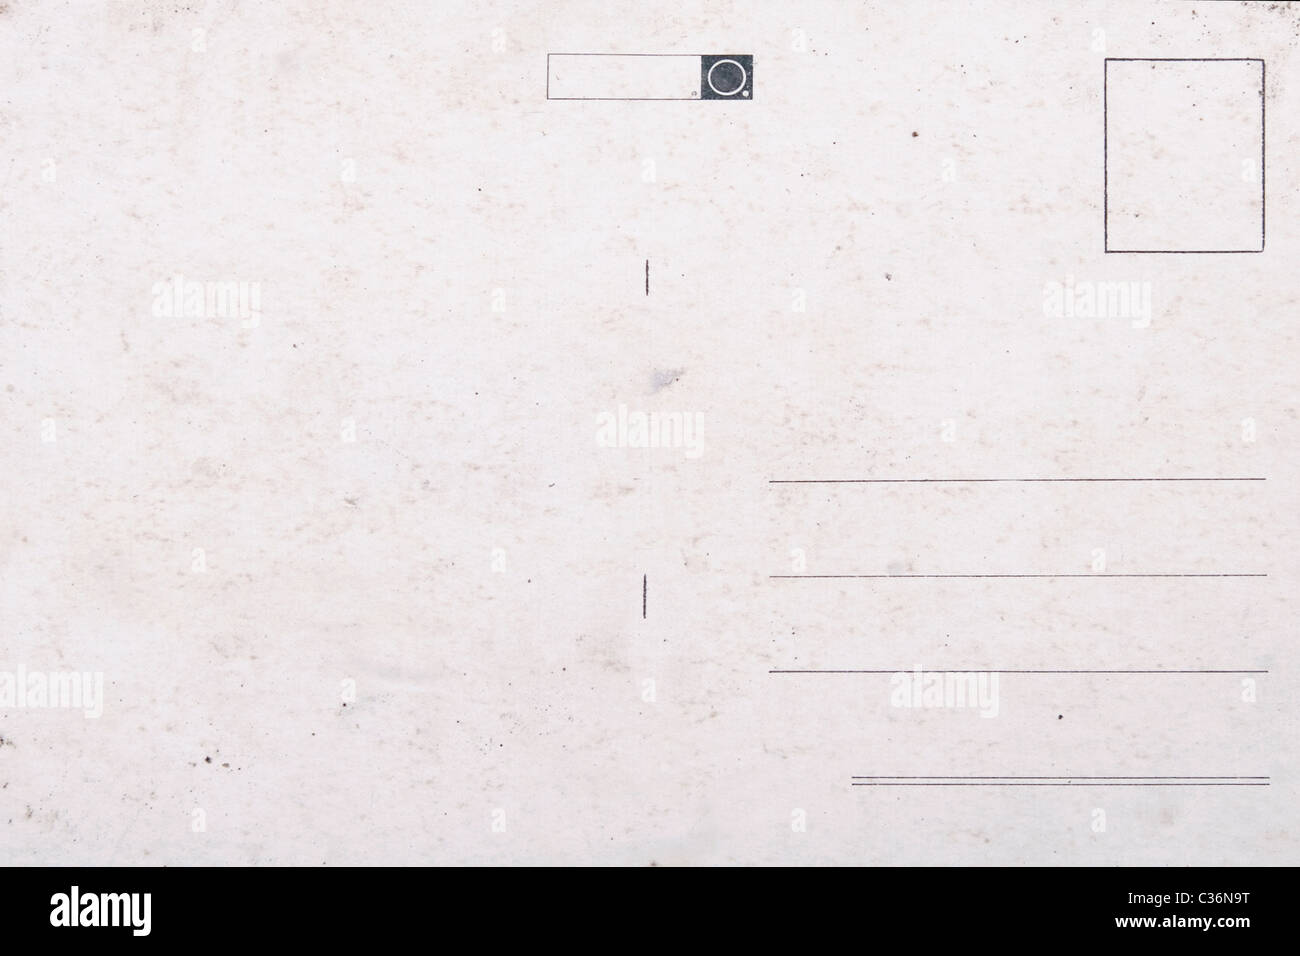 Old empty postcard, grunge paper with aging marks - Stock Image